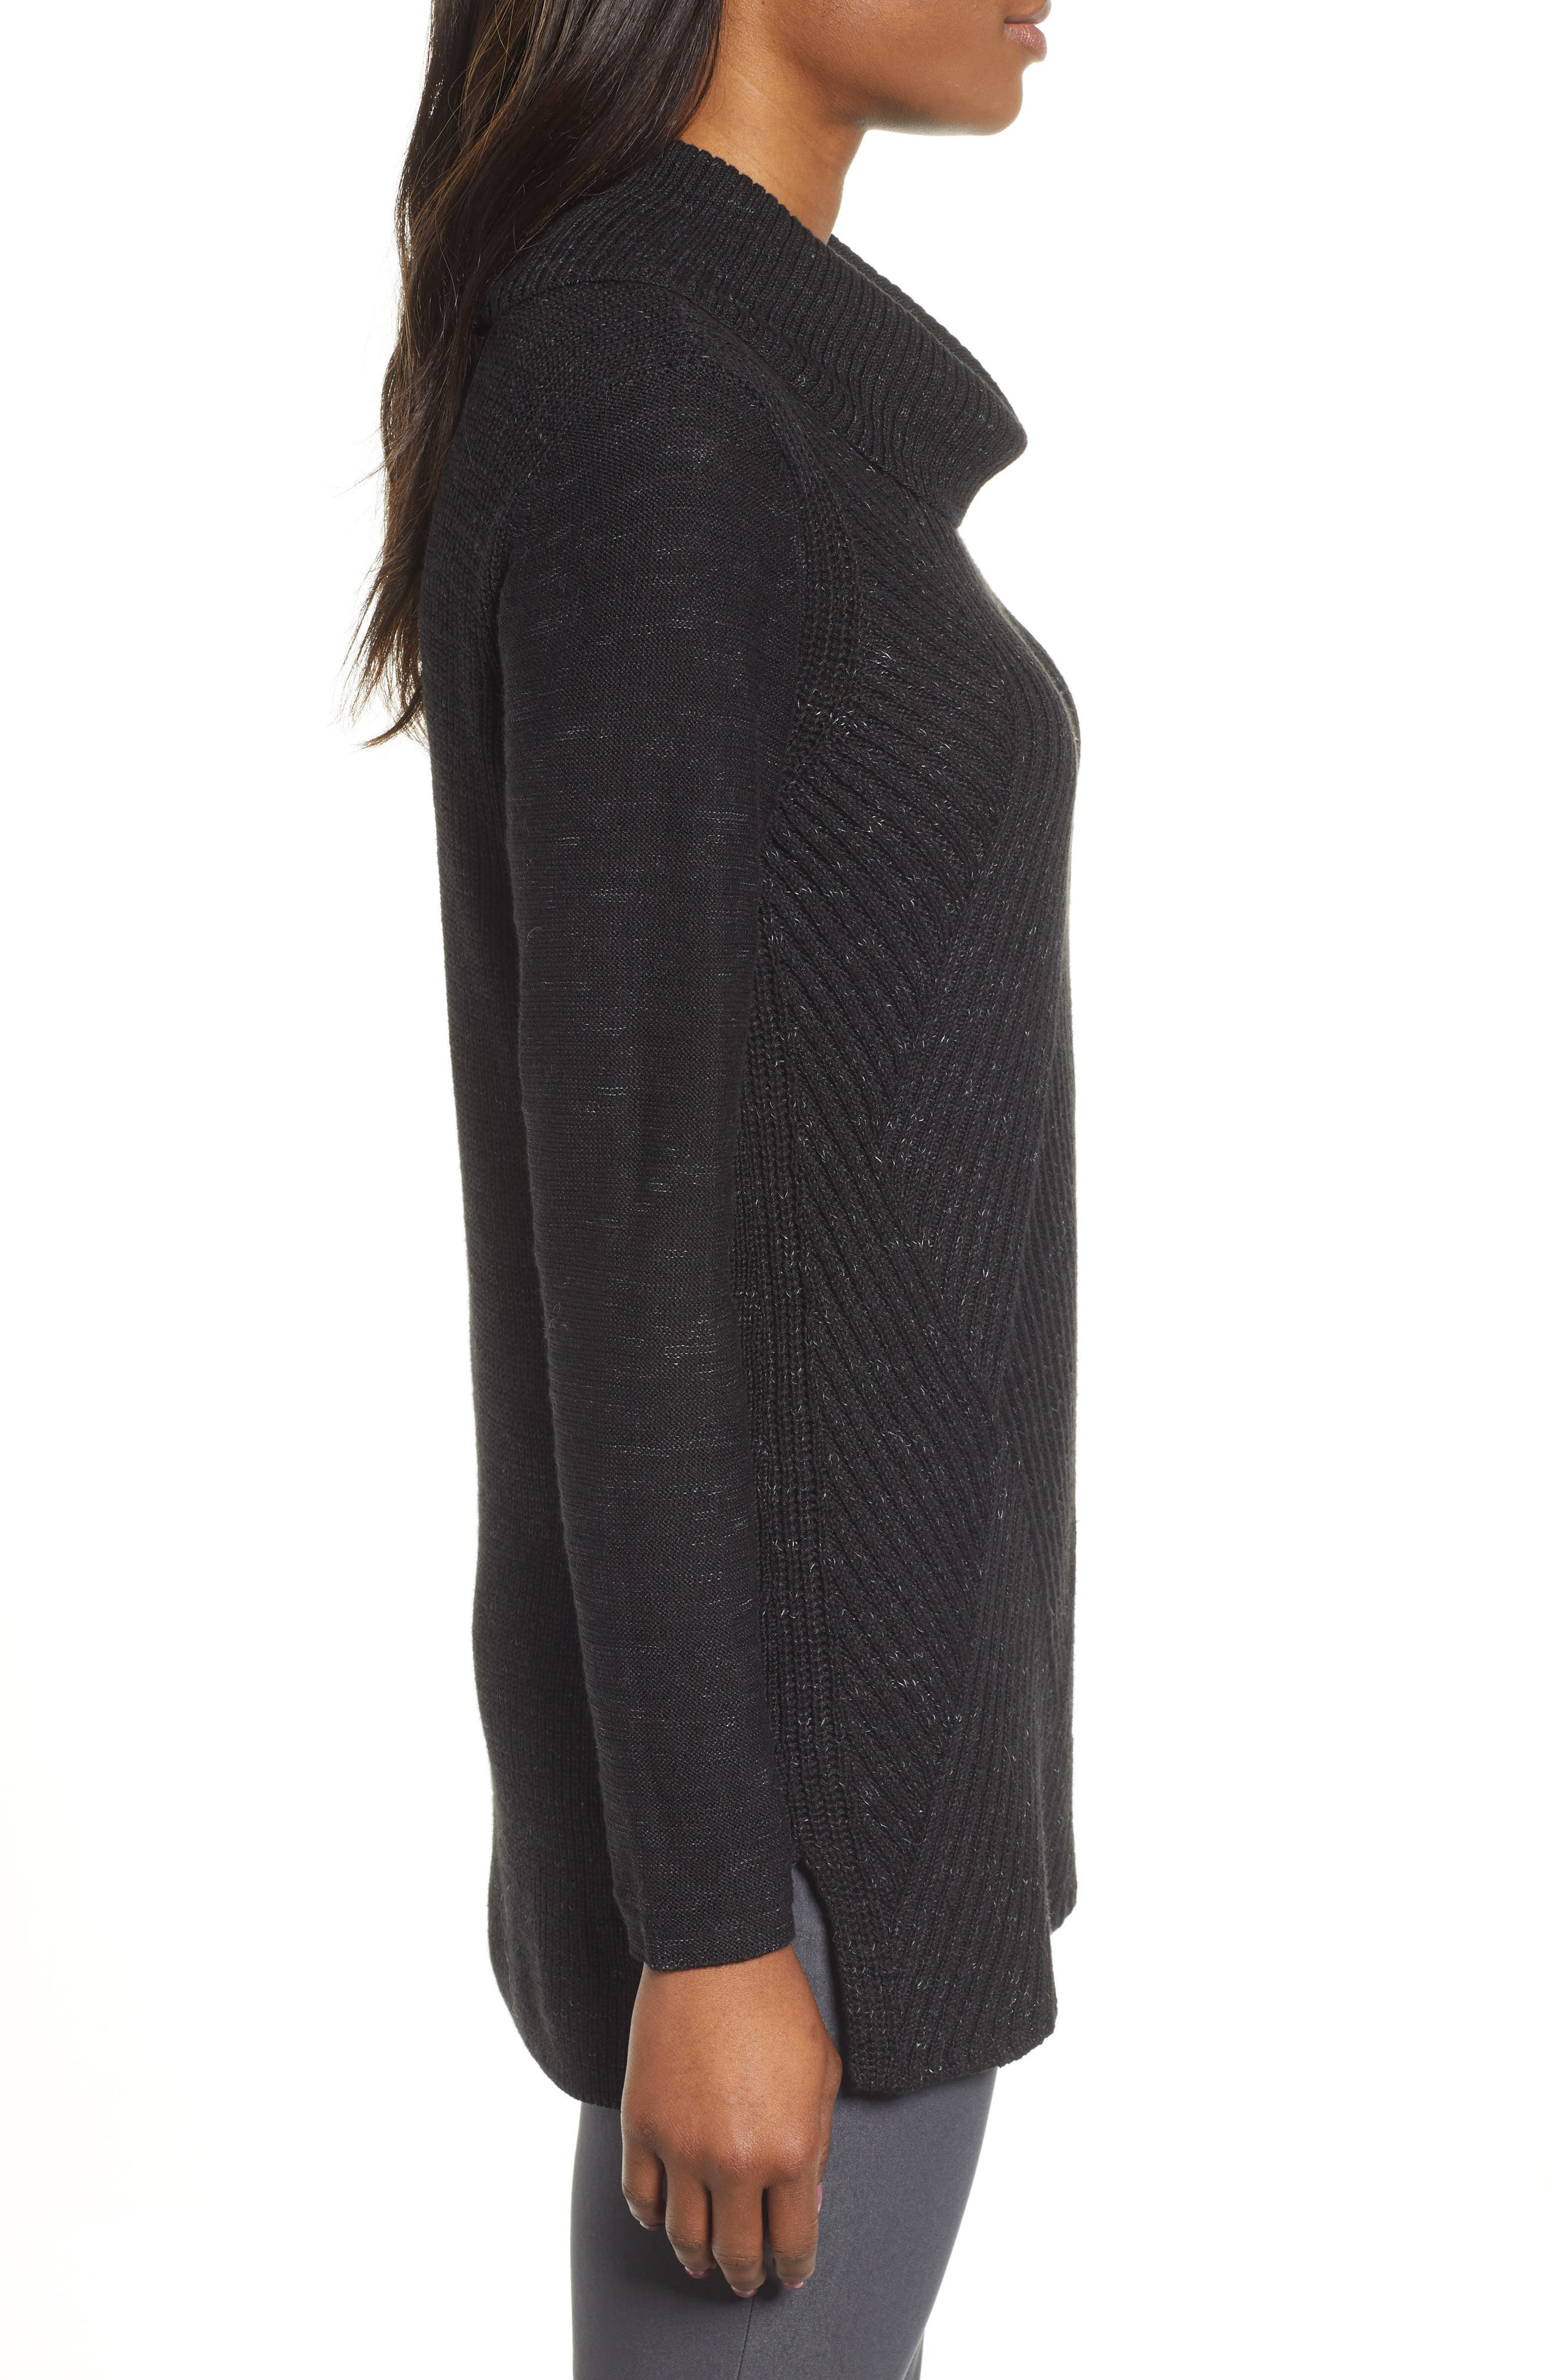 North Star Sweater,                             Alternate thumbnail 3, color,                             004